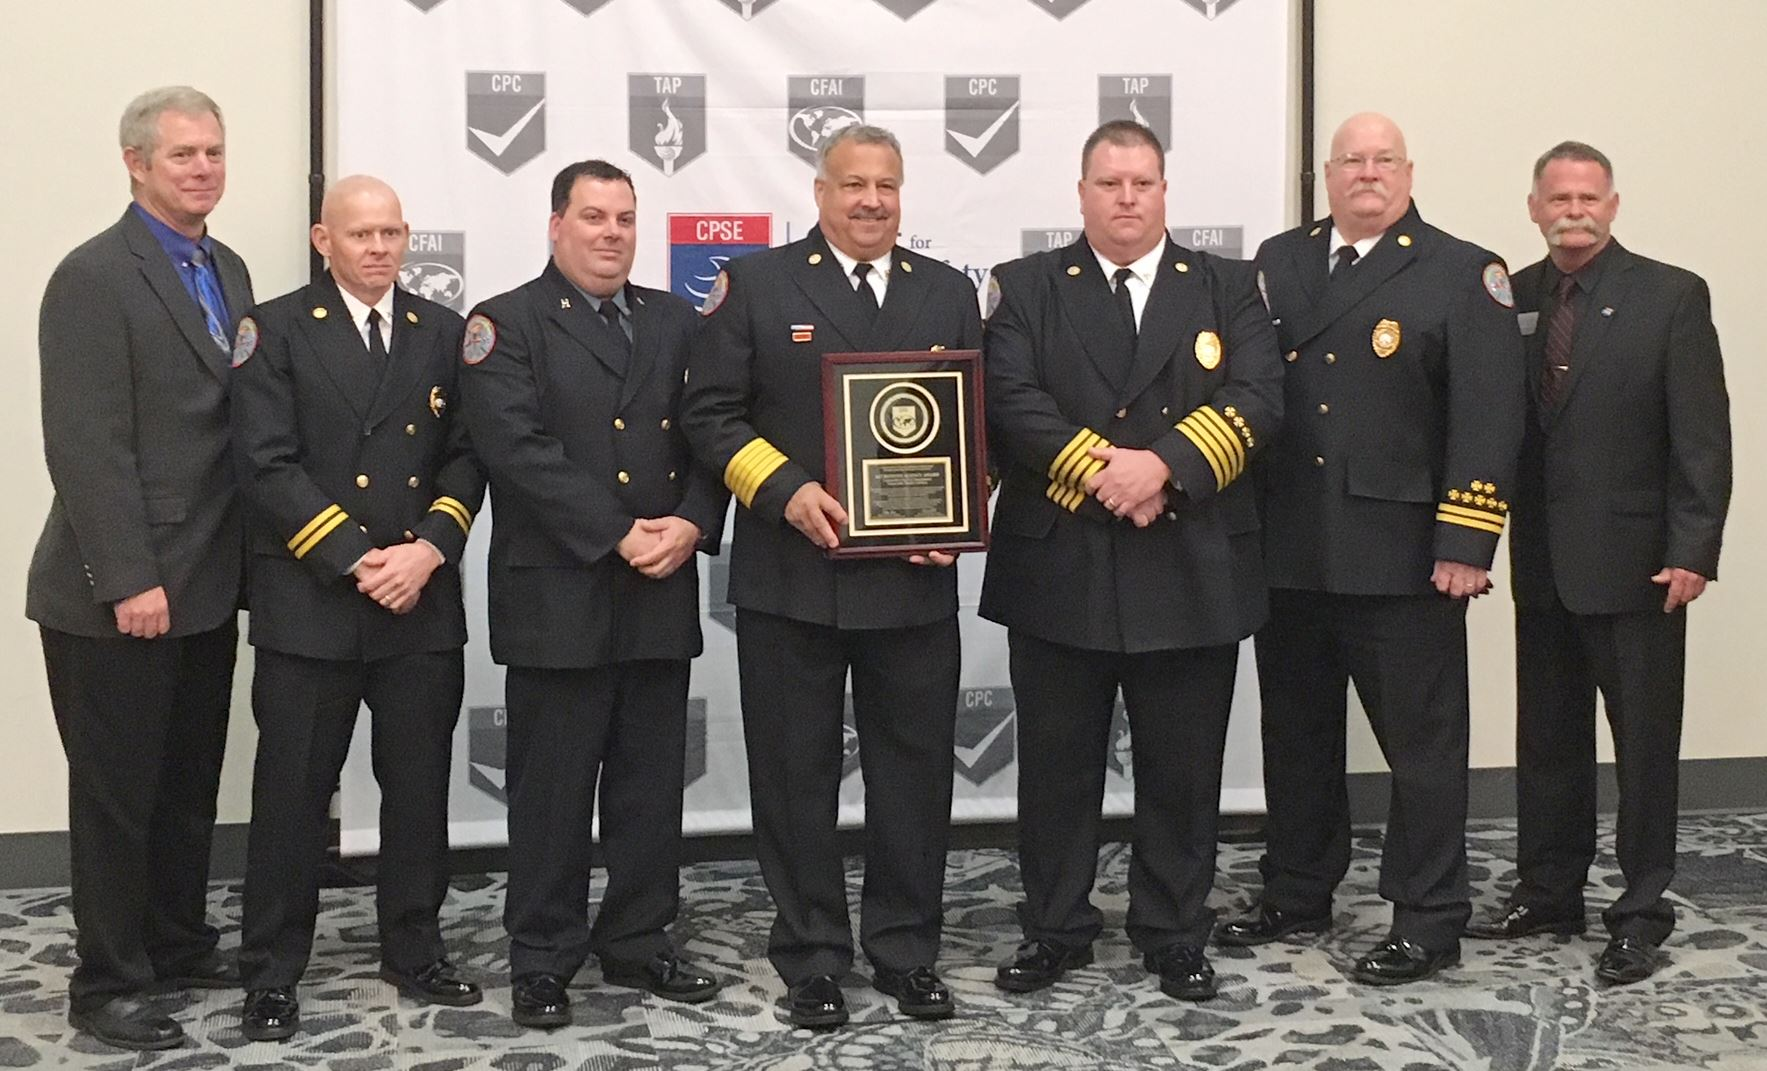 GCFD Chief Kovalcik and firefighters holding their international accrediation plaque